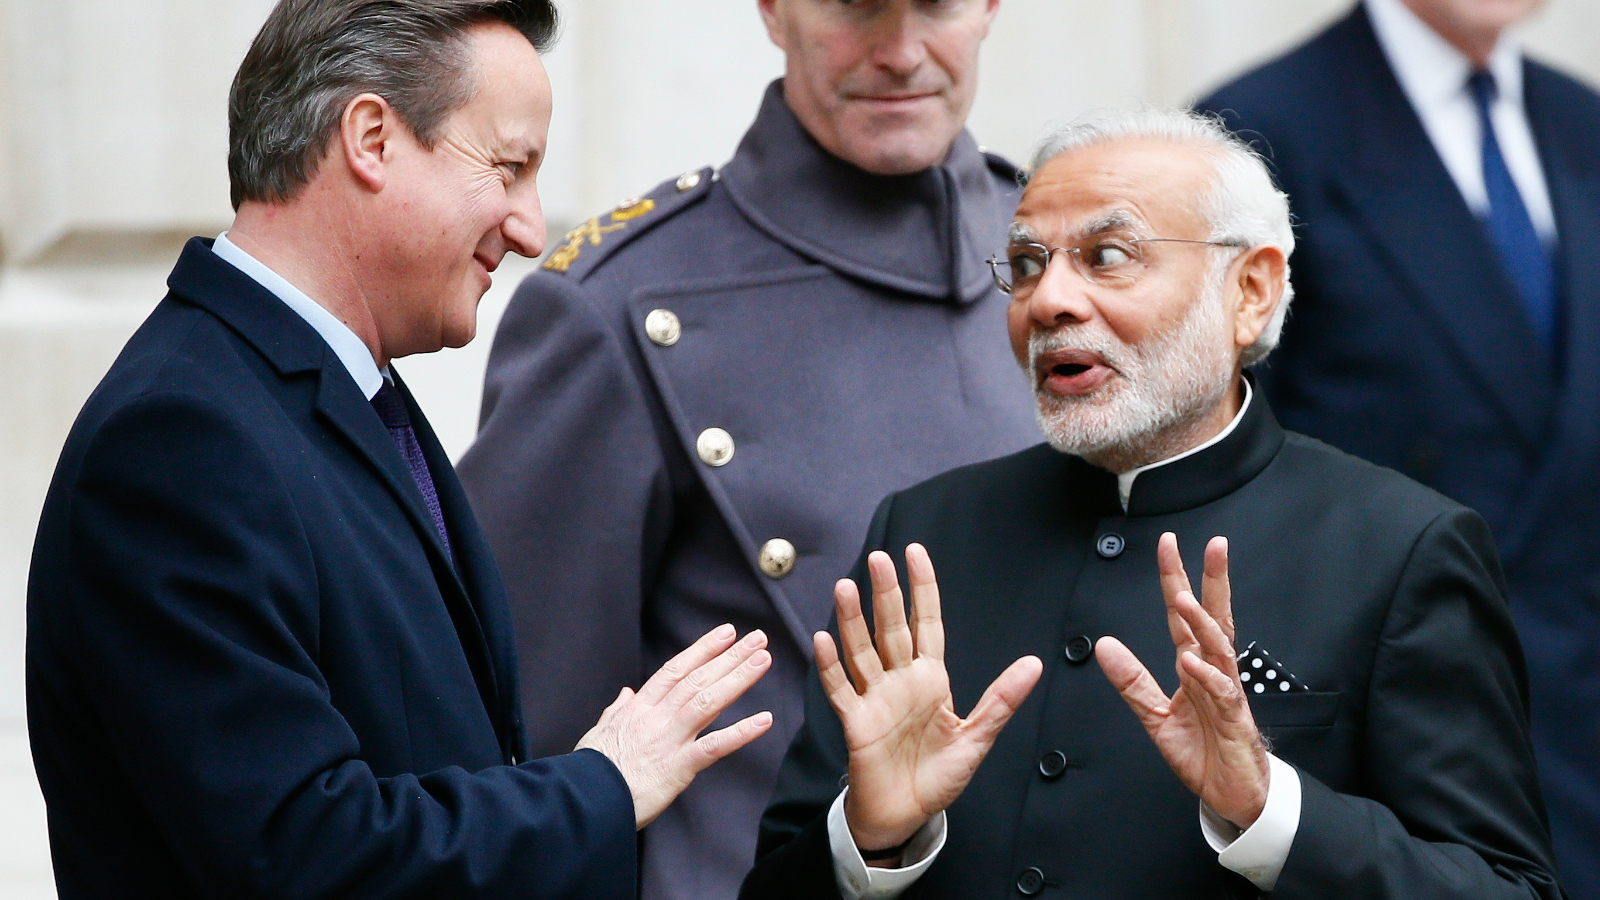 India's prime minister Narendra Modi's chats with Britain's prime minister David Cameron after the ceremonial welcome during his official visit, in London, November 12, 2015.